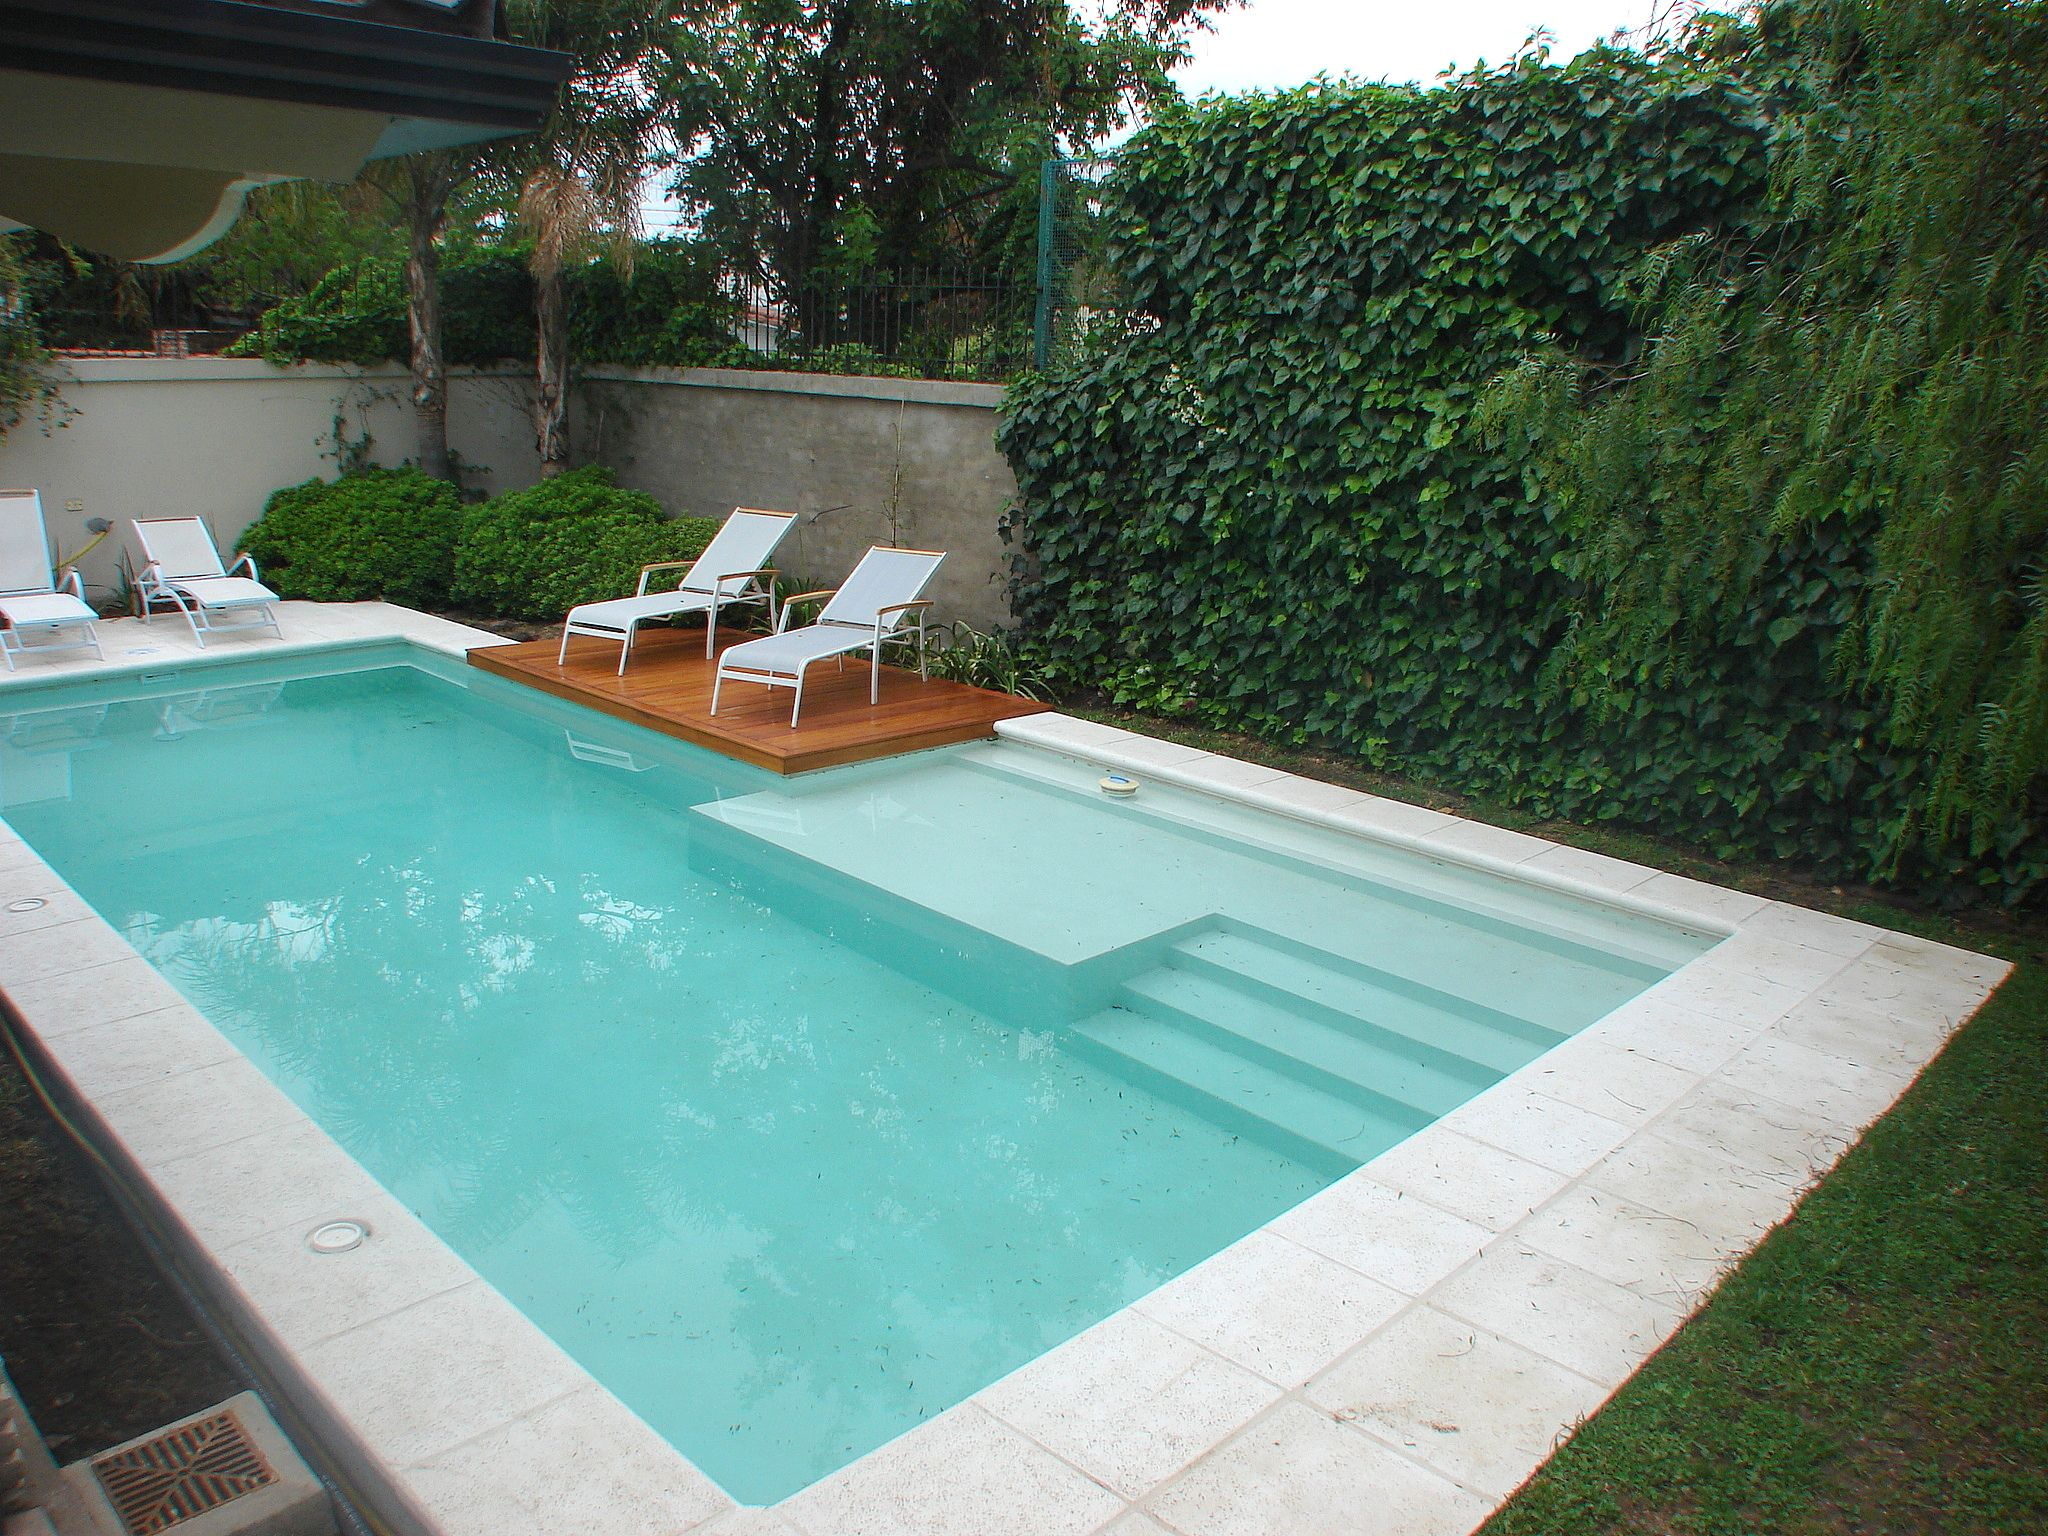 Piscina familiar swimmingpool deck de madera for Disenos para albercas